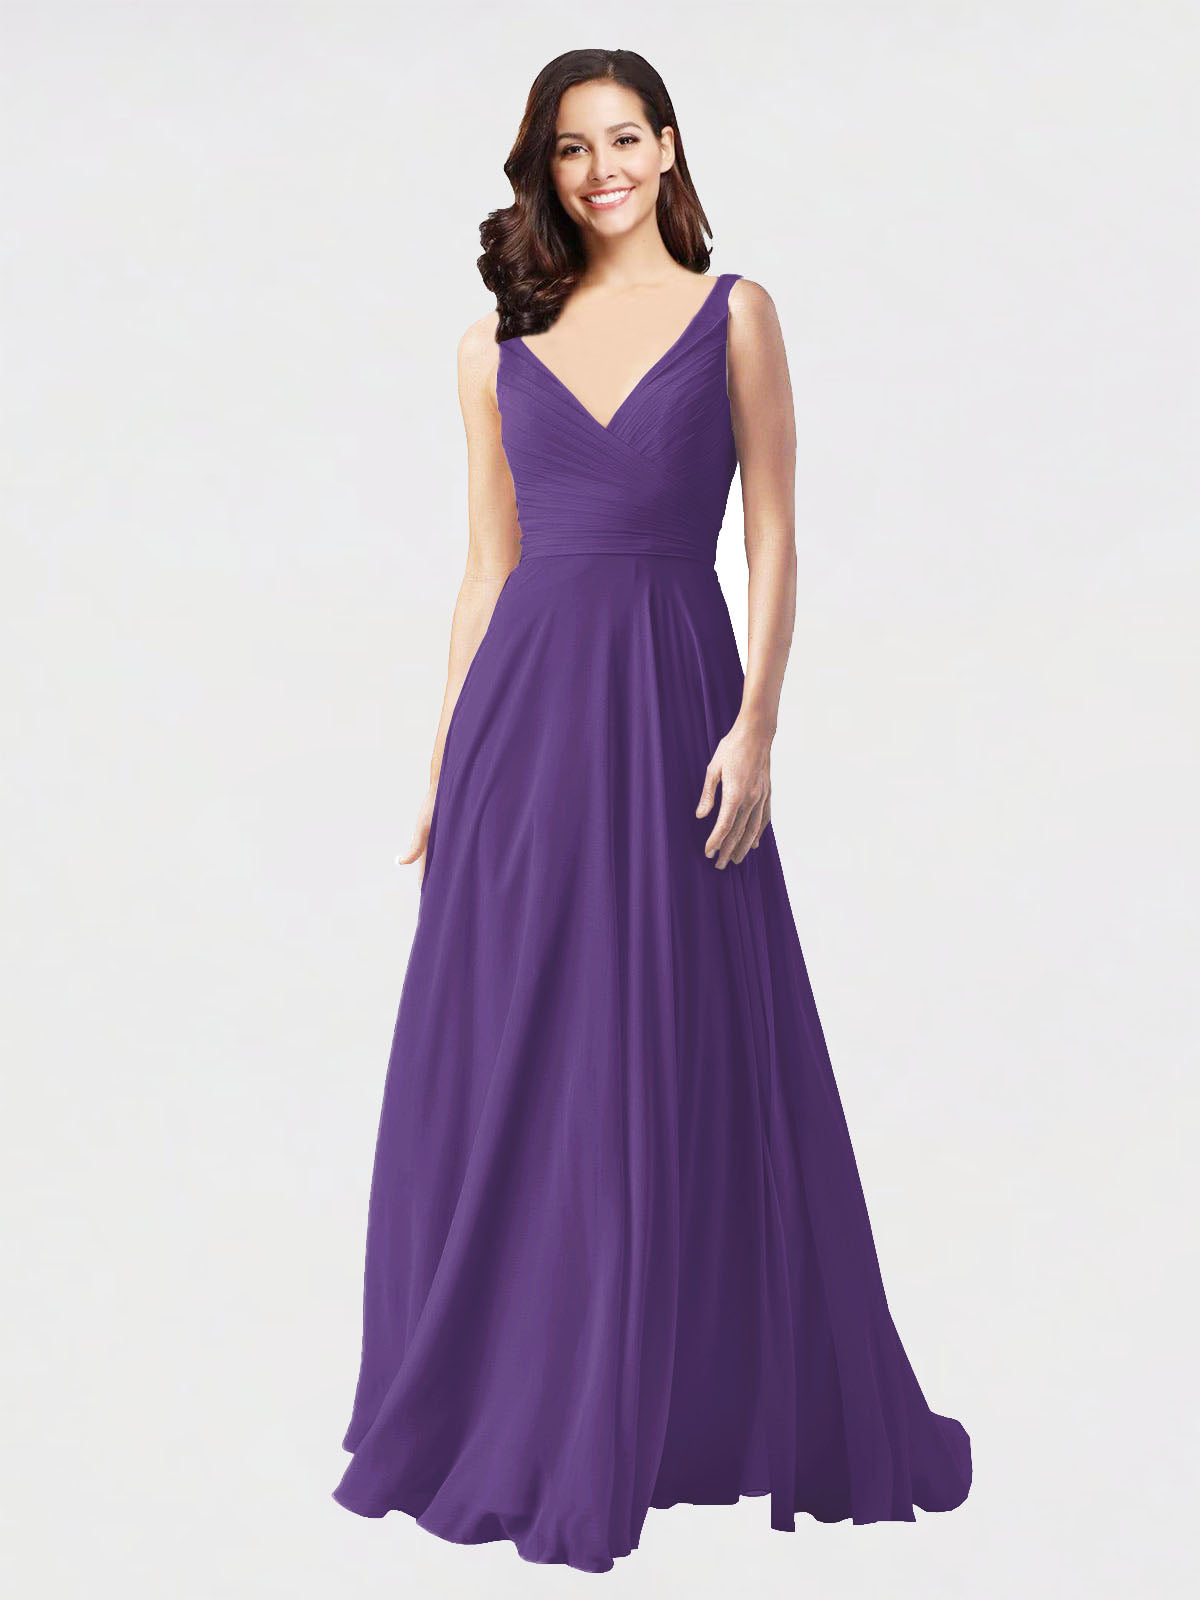 Long A-Line V-Neck Sleeveless Plum Purple Chiffon Bridesmaid Dress Bernice